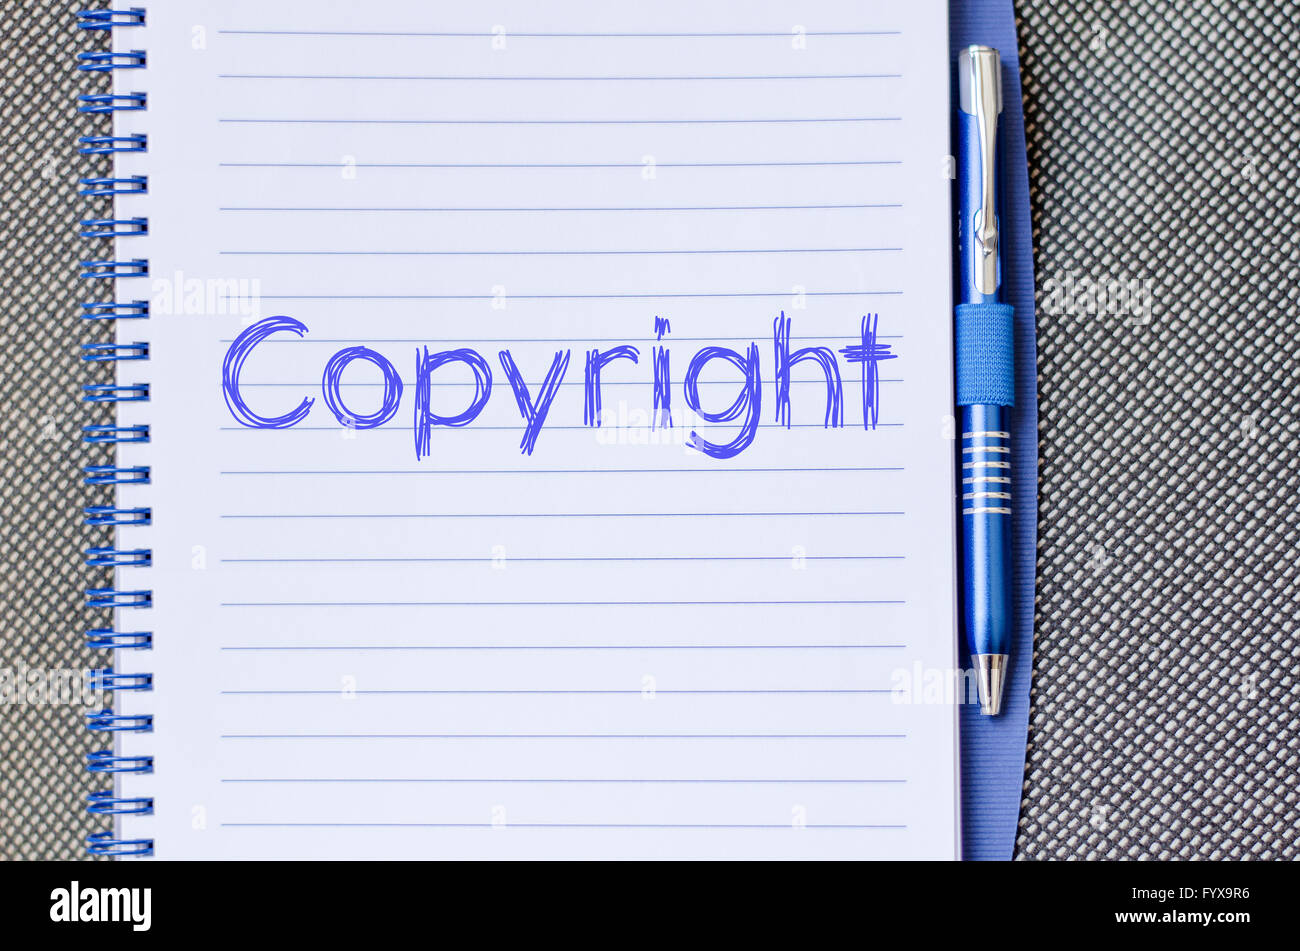 Copyright write on notebook - Stock Image